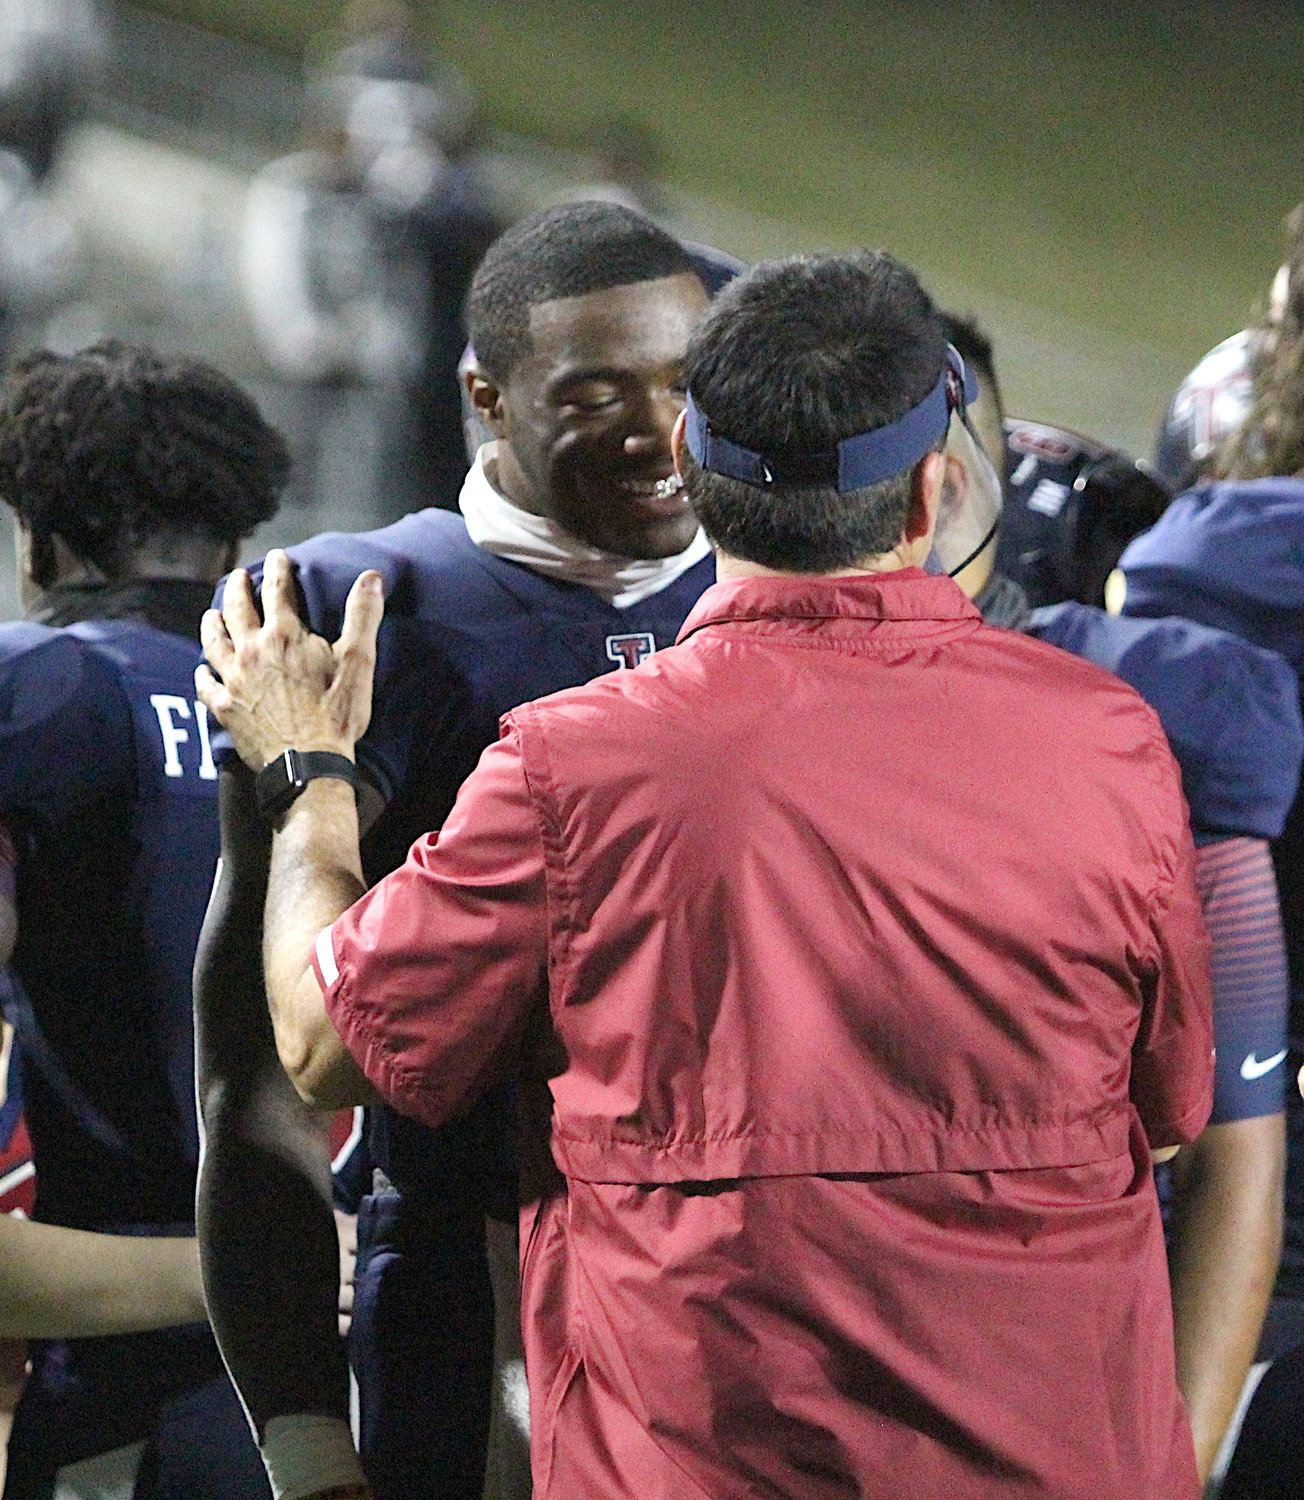 Tompkins senior quarterback Jalen Milroe and Tompkins head coach Todd McVey share a congratulatory moment after the Falcons' 24-19 win over Katy on Nov. 5 at Legacy Stadium.